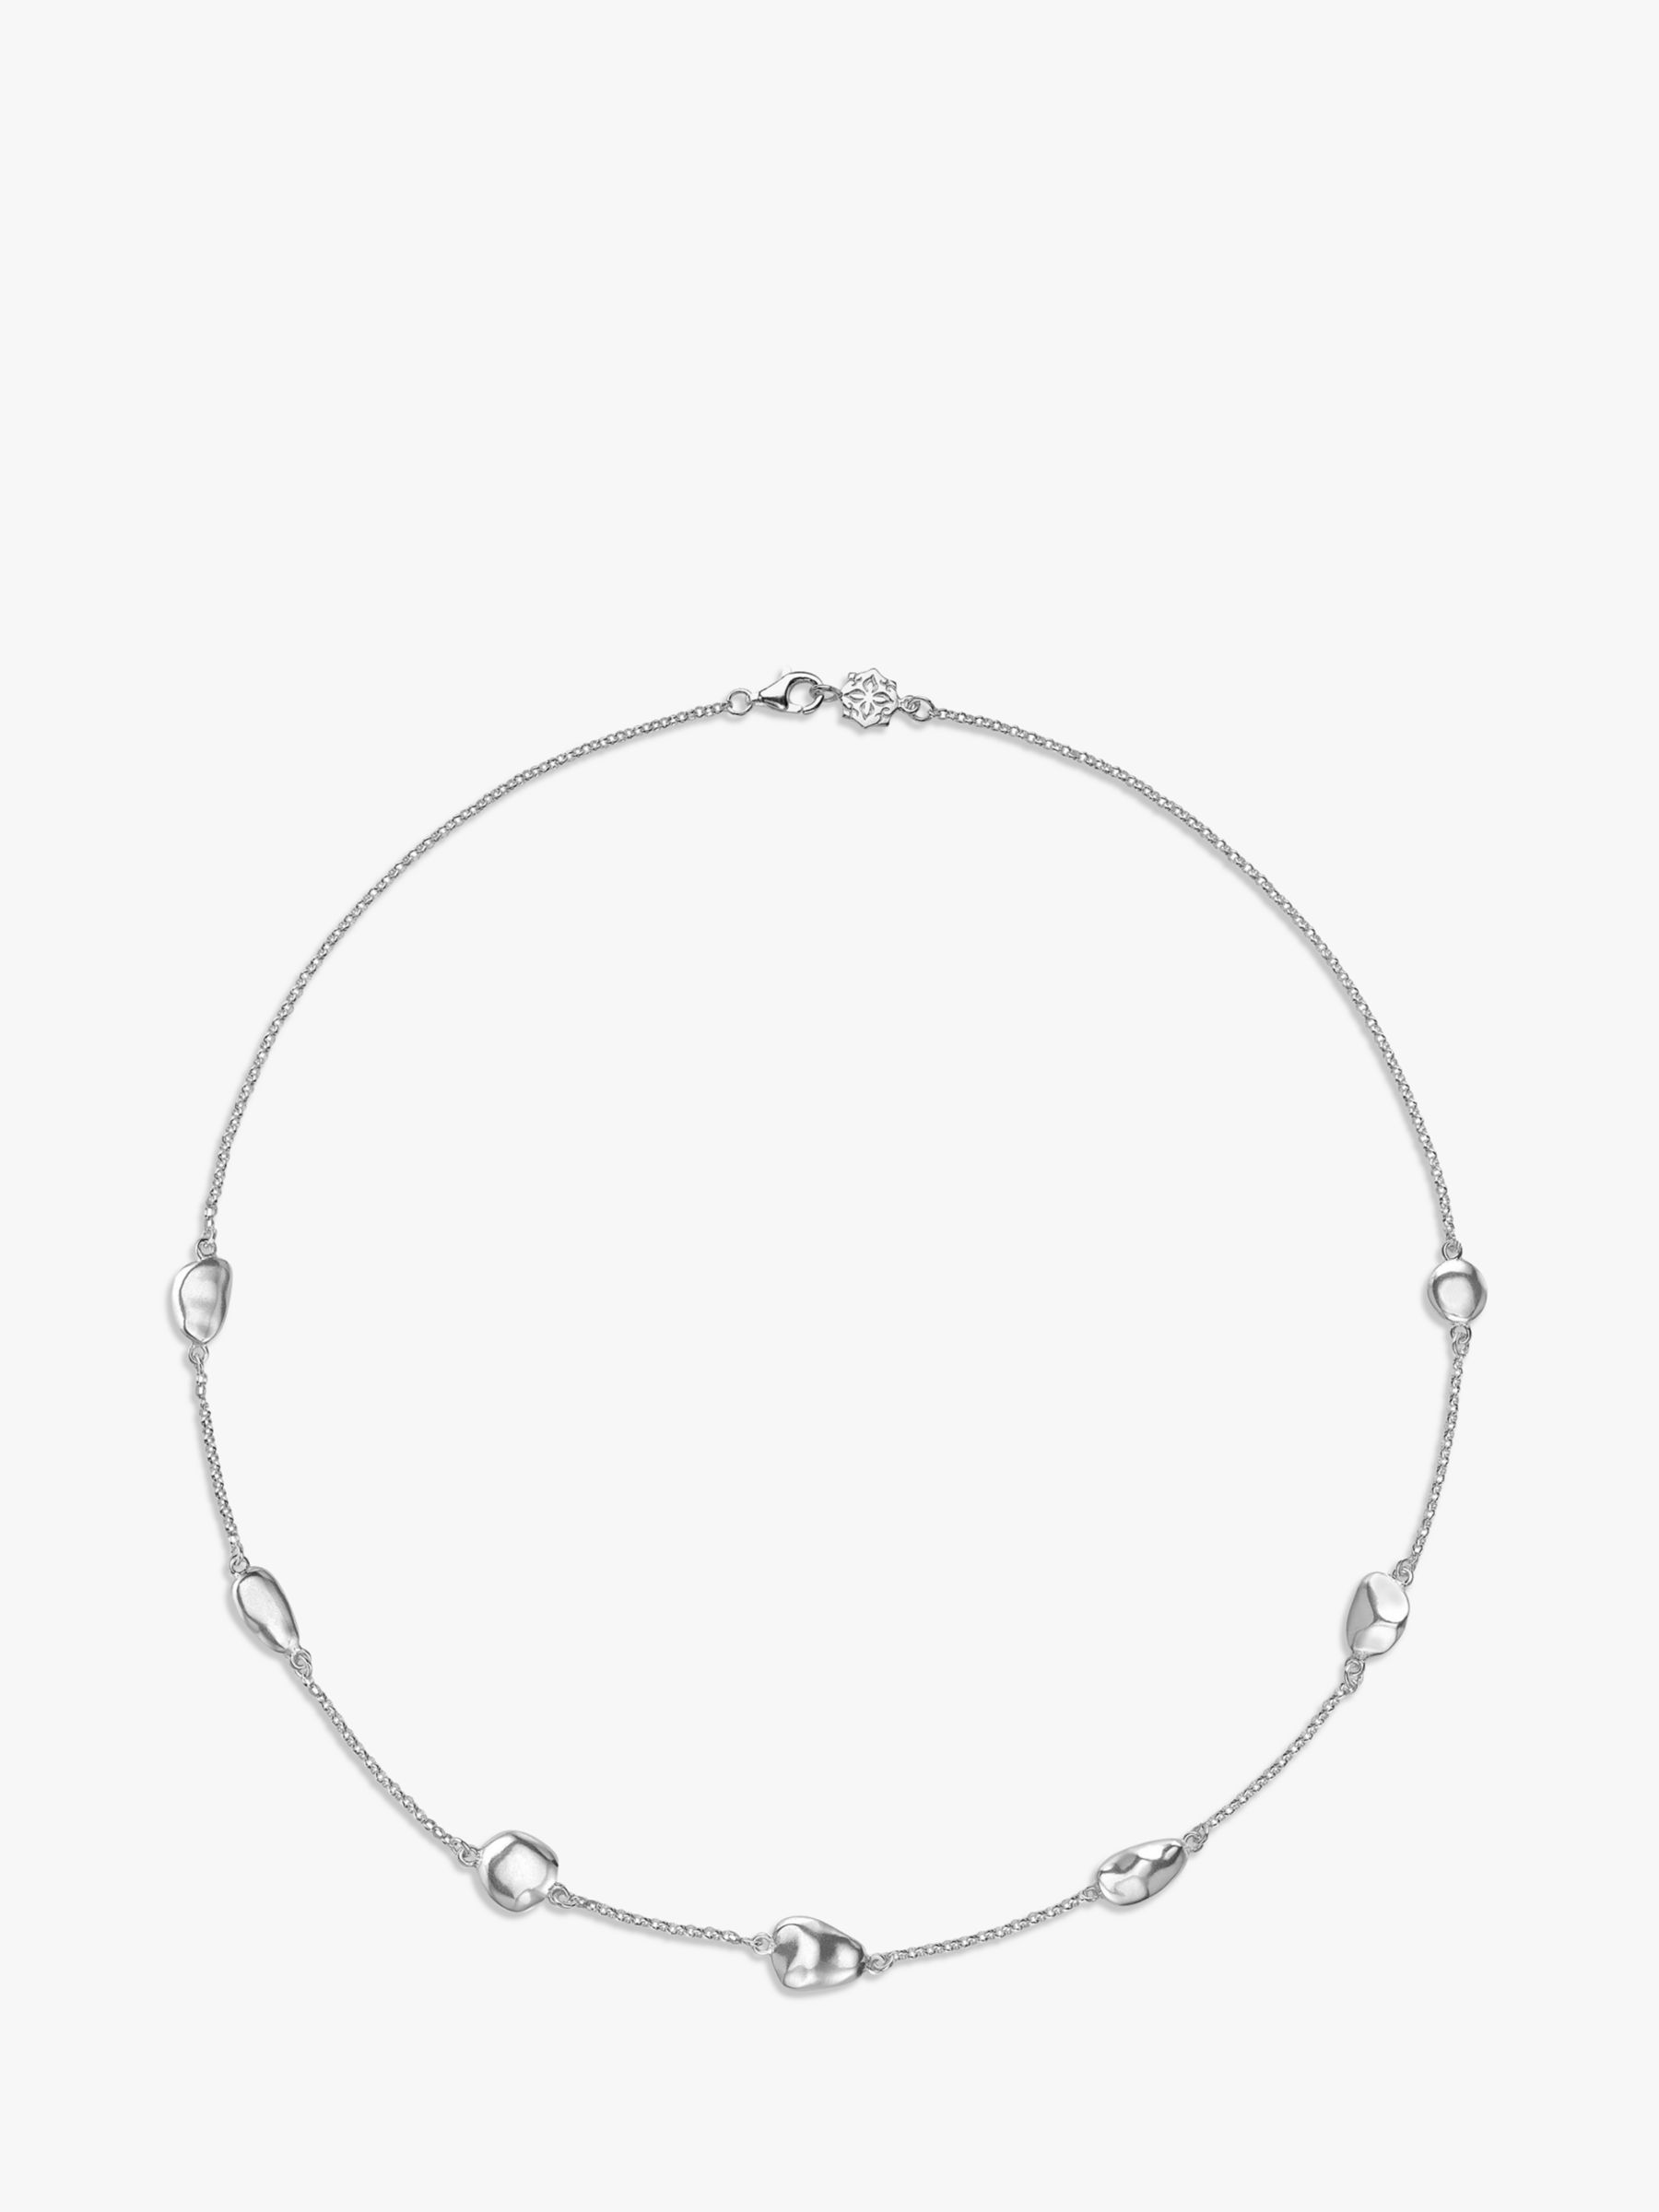 Dower & Hall Dower & Hall Sterling Silver Pebble Chain Necklace, Silver